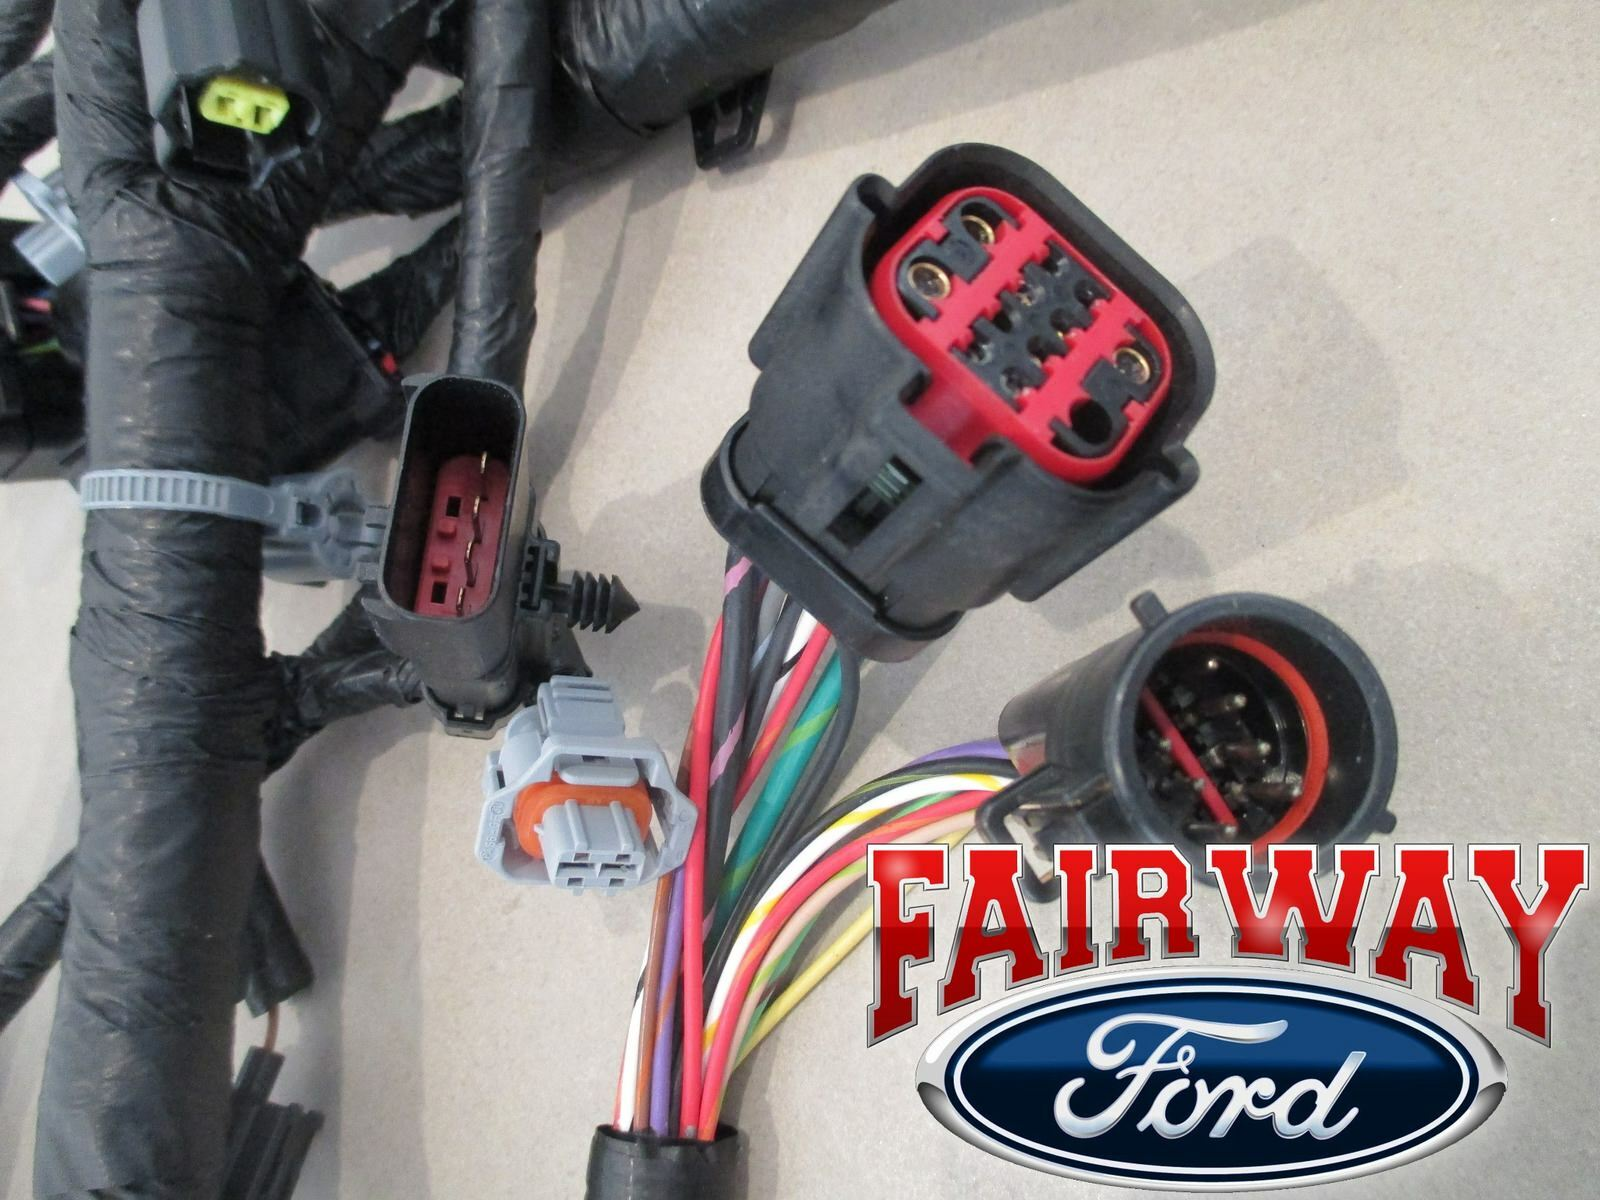 hight resolution of 04 ford f250 f350 super duty 04 05 excursion 6 0l diesel engine wire harness oem for sale online ebay